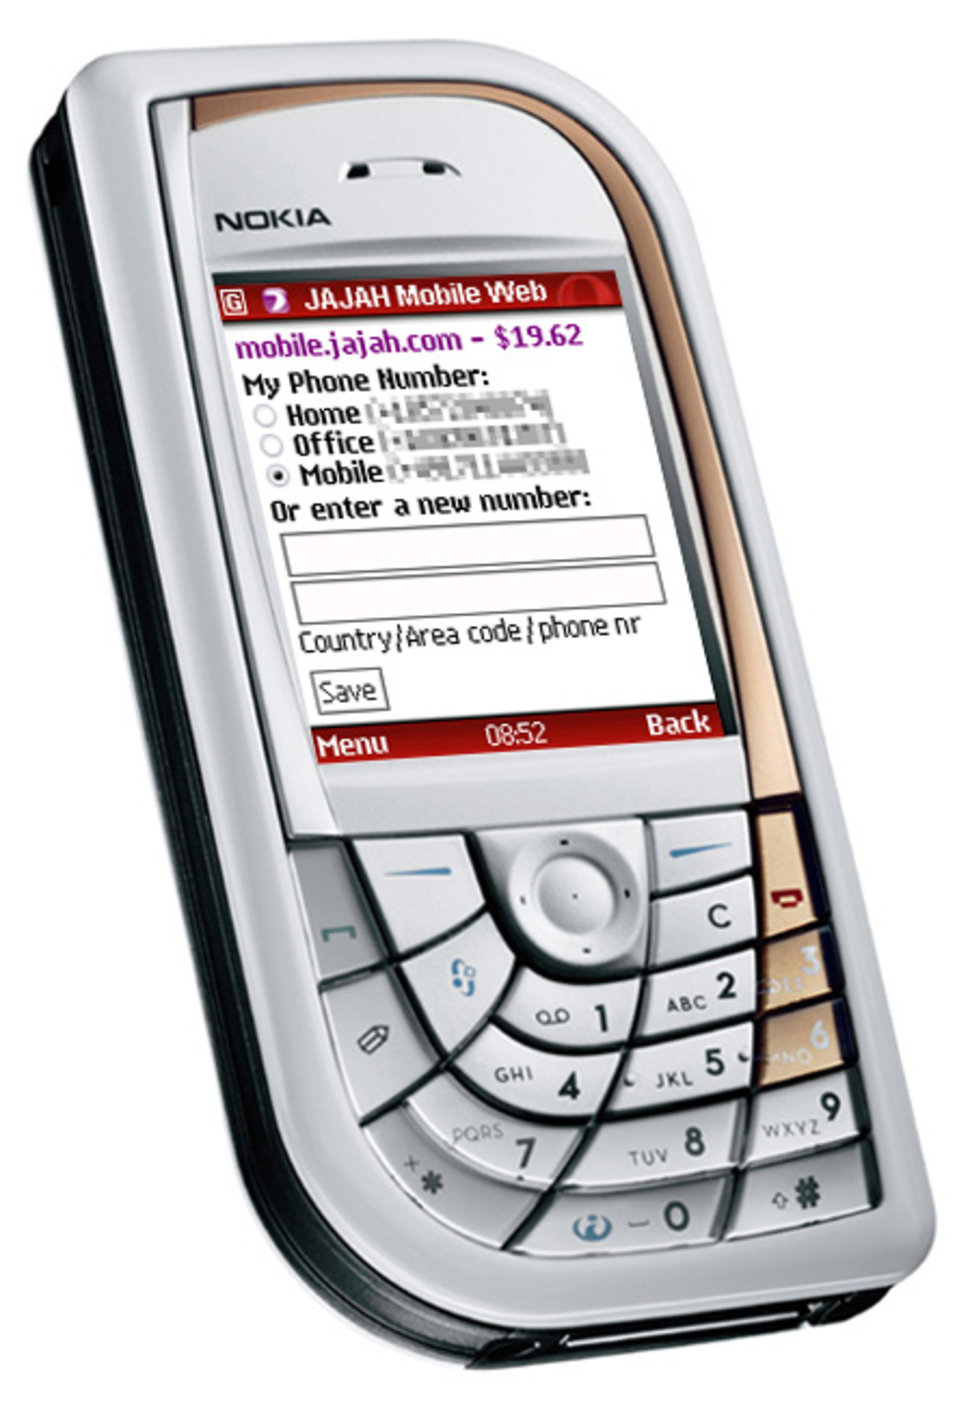 Jajah Mobile lets you make low-cost calls anywhere - Pocket-lint